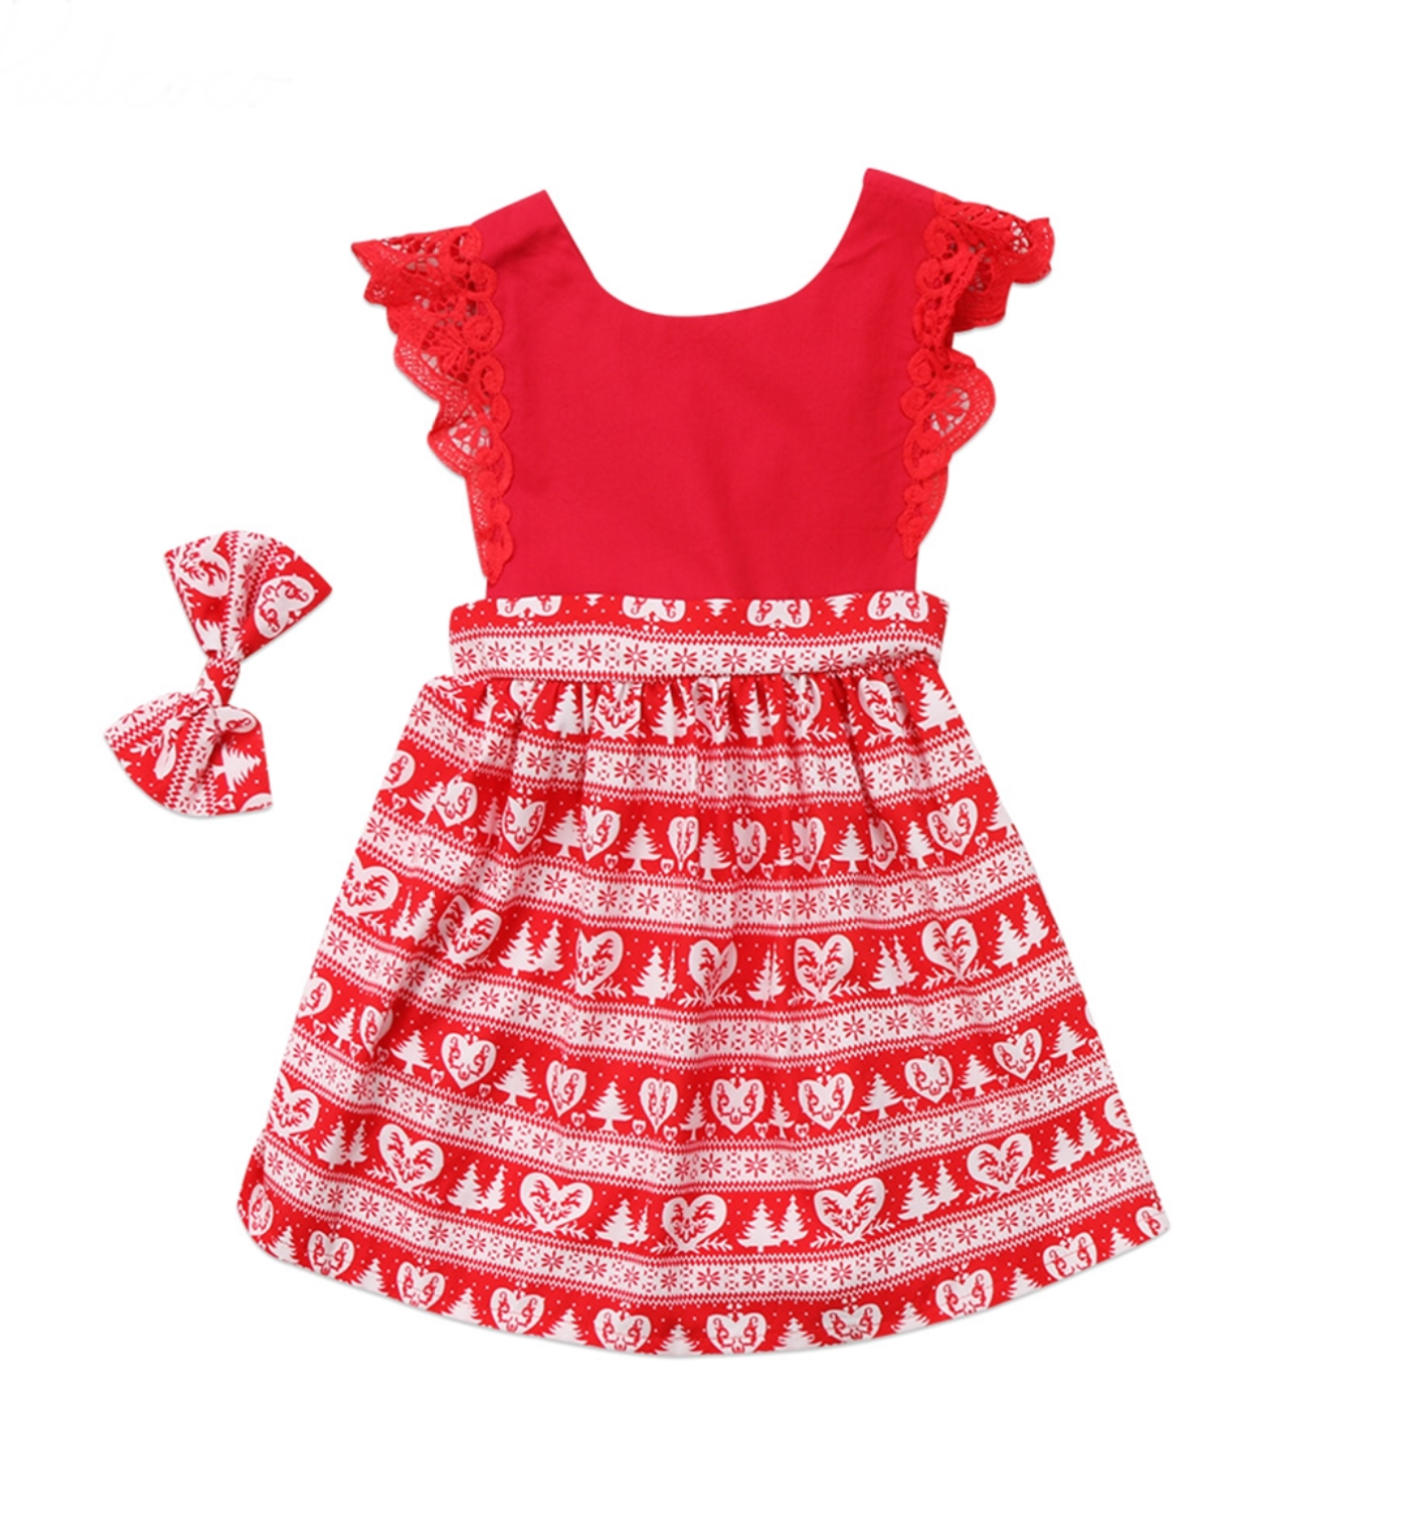 Christmas Kids Baby Girls Toddler Red Party Dress With Bowknot Hair Clip – 3T